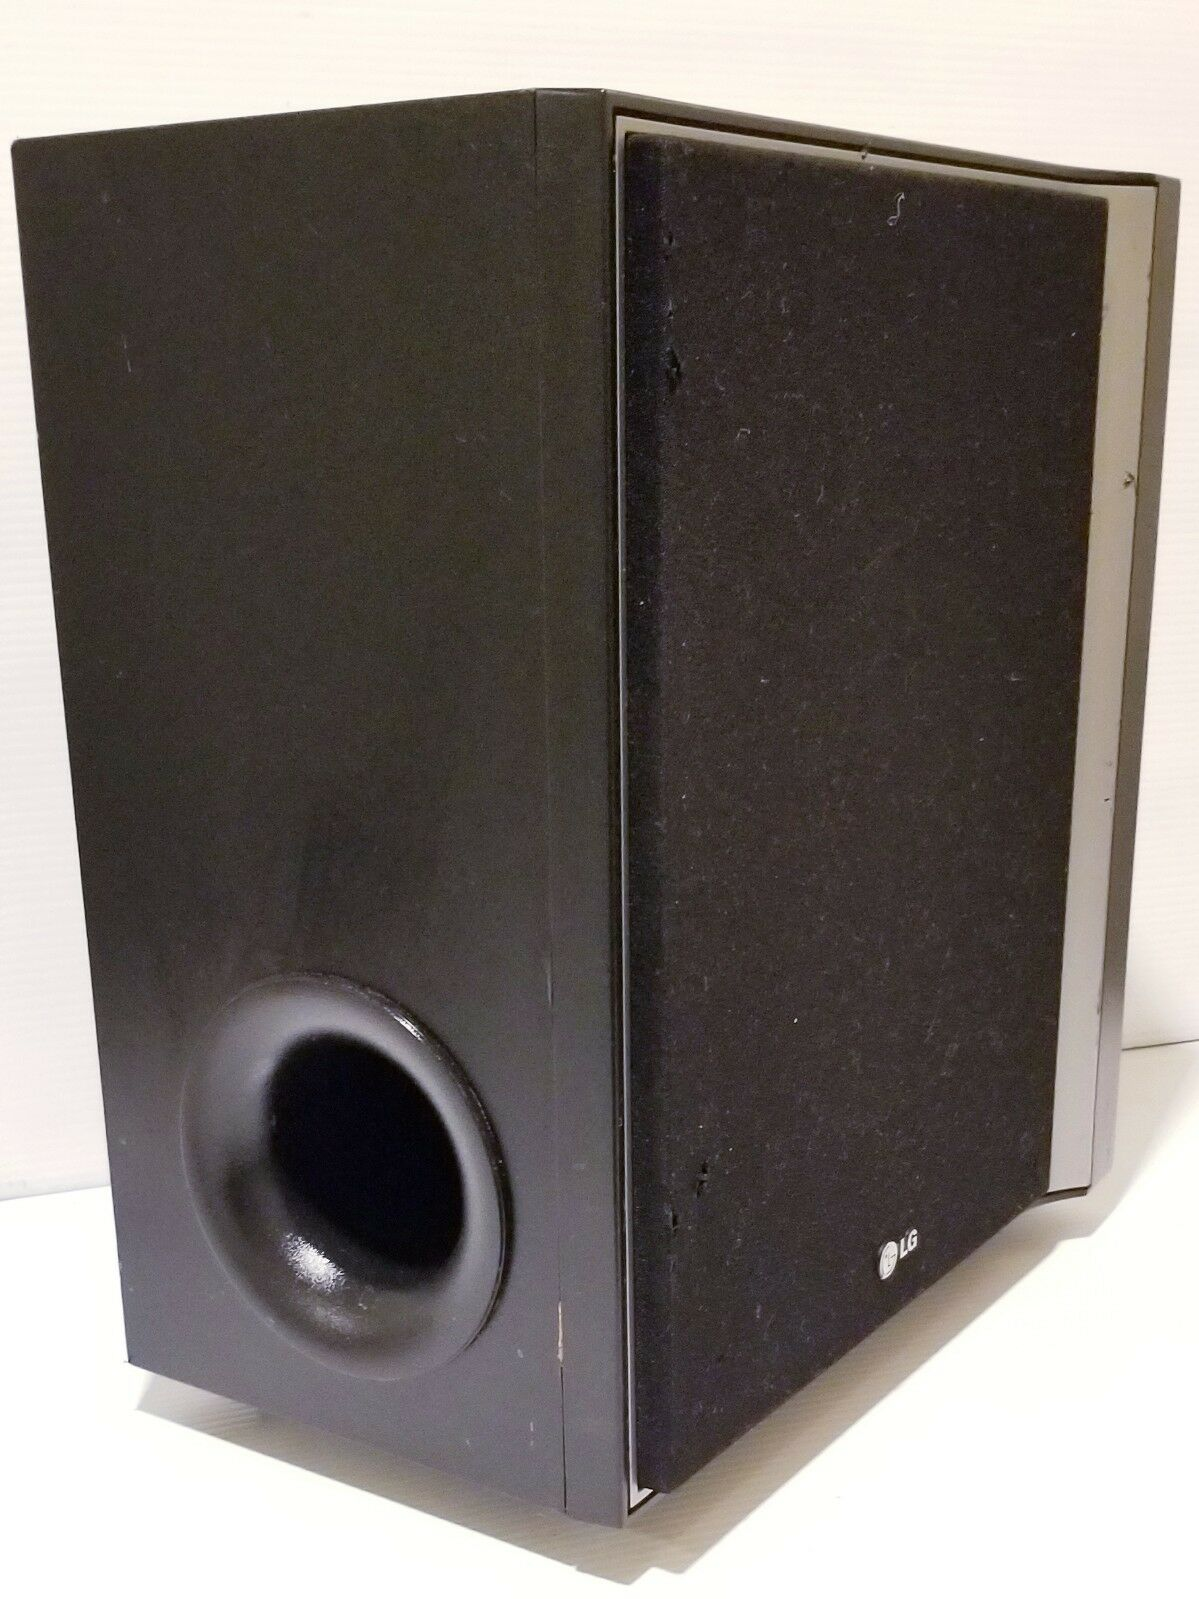 LG SH92SB-W 225W 450W Passive 1-Way Home Theater Subwoofer for LHT754